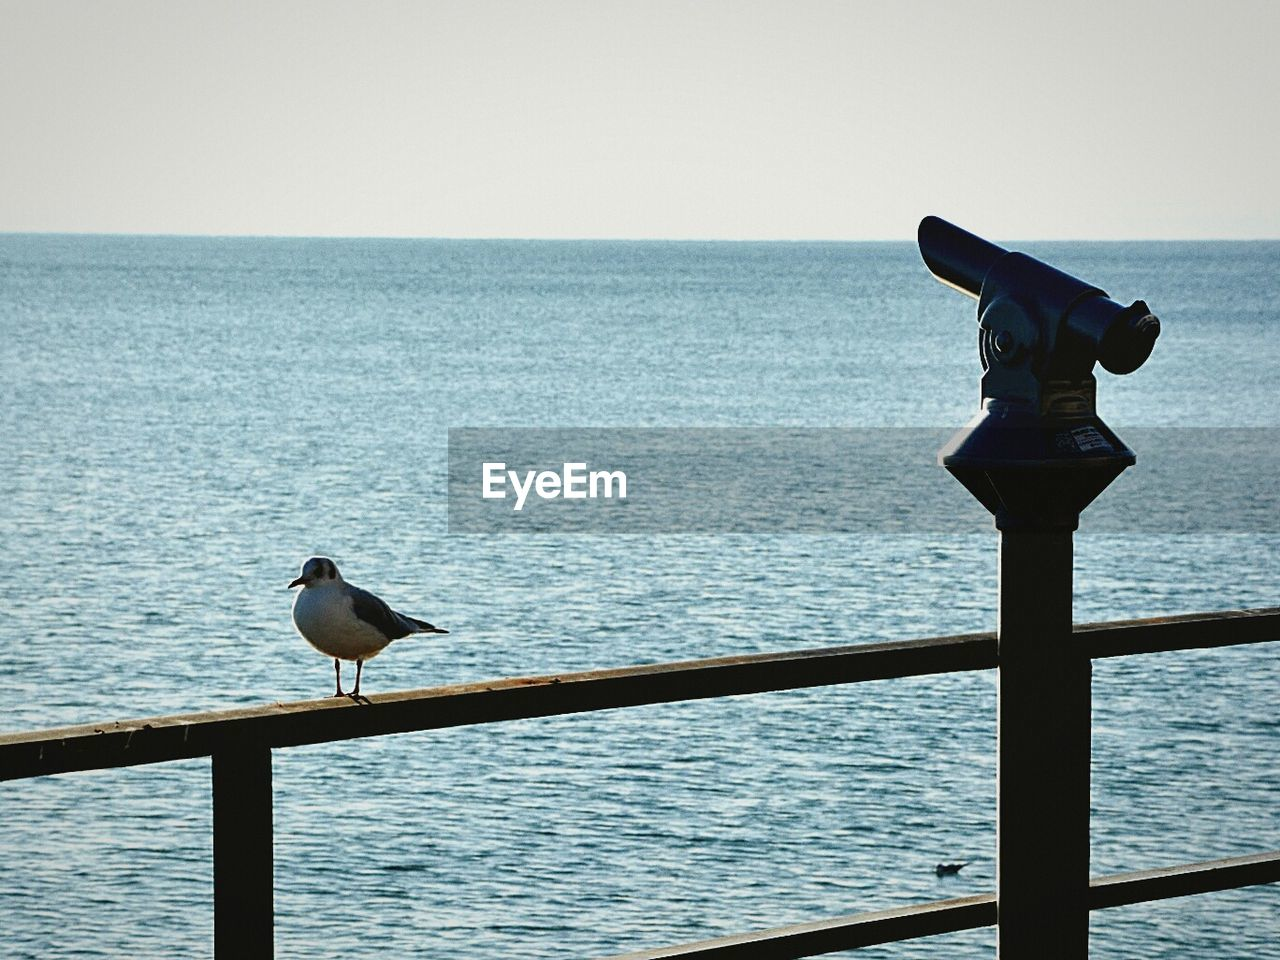 sea, water, horizon over water, clear sky, nature, railing, scenics, one animal, no people, beauty in nature, bird, outdoors, day, sky, animal themes, animals in the wild, coin-operated binoculars, perching, close-up